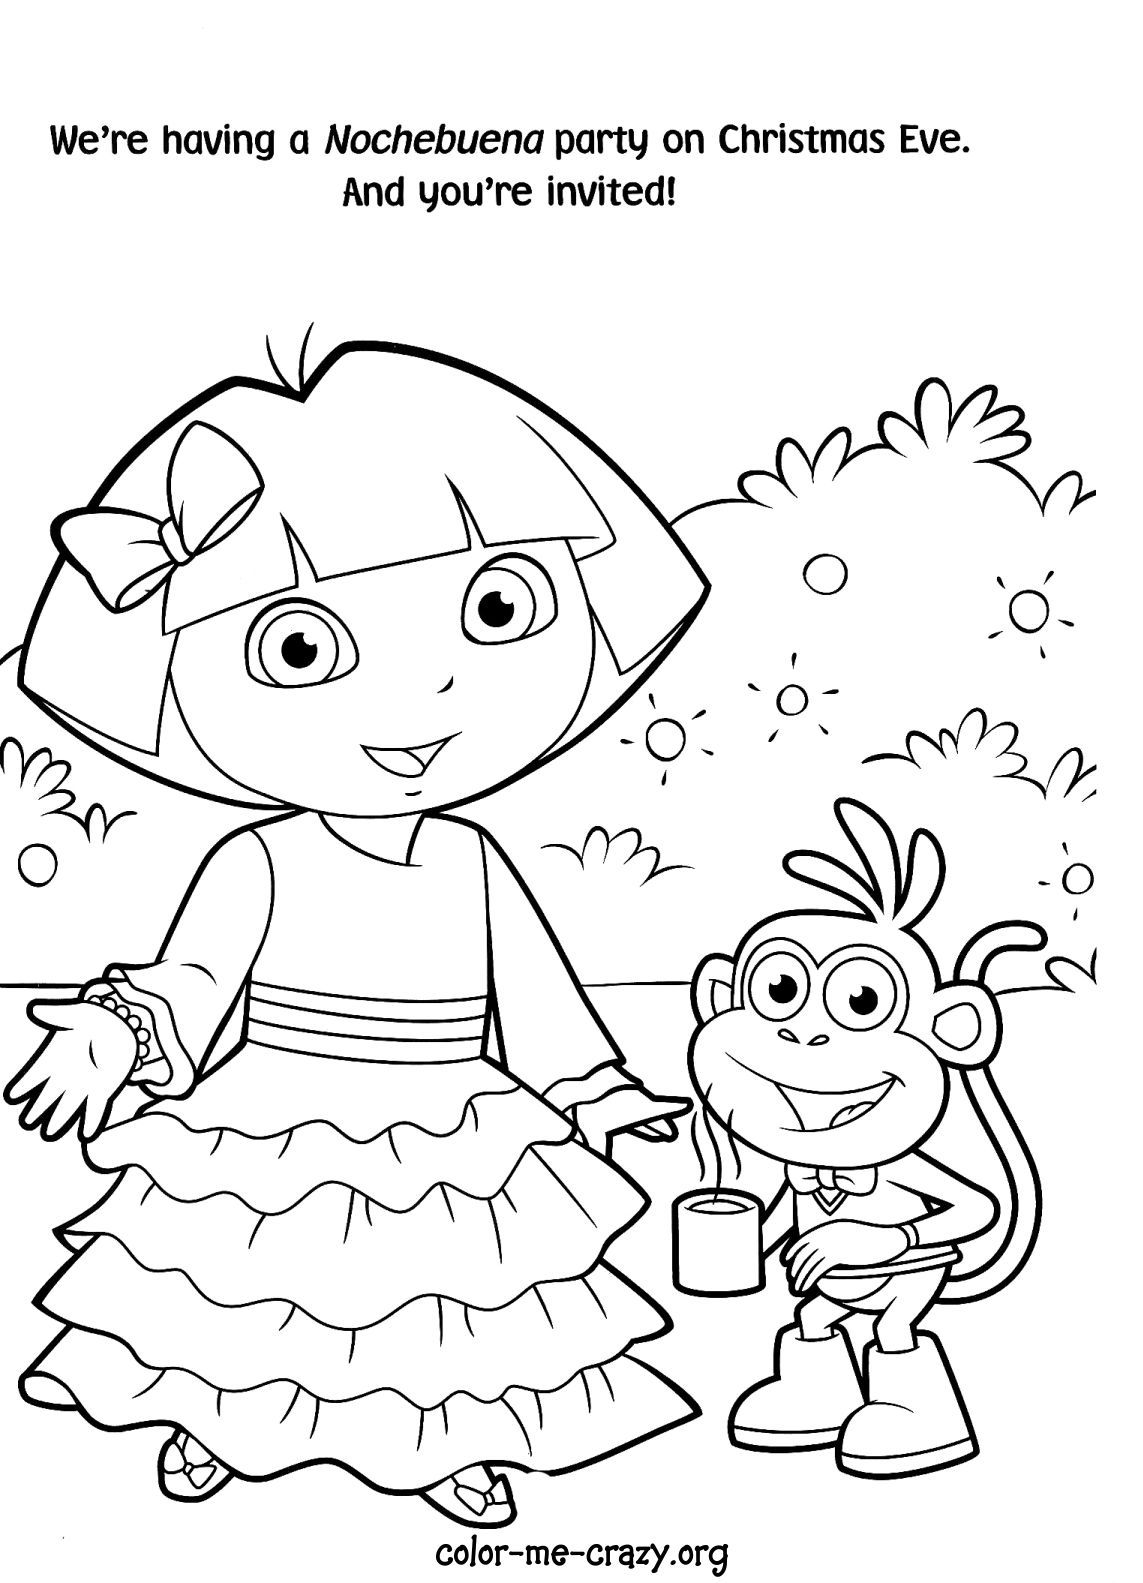 printable dora pictures print download dora coloring pages to learn new things pictures printable dora 1 1